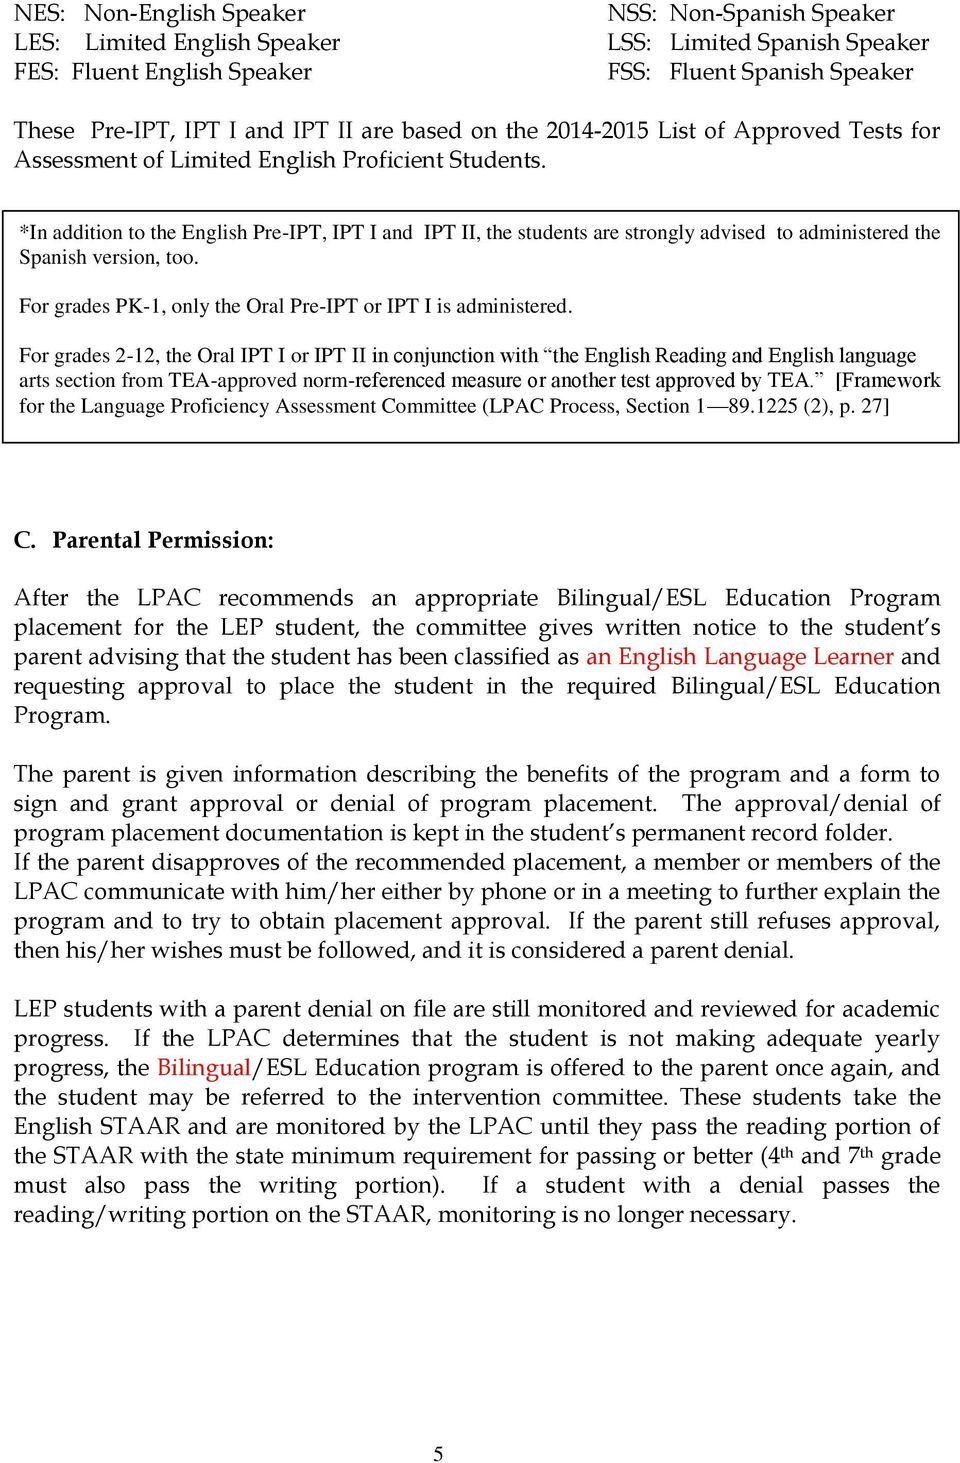 *In addition to the English Pre-IPT, IPT I and IPT II, the students are strongly advised to administered the Spanish version, too. For grades PK-1, only the Oral Pre-IPT or IPT I is administered.